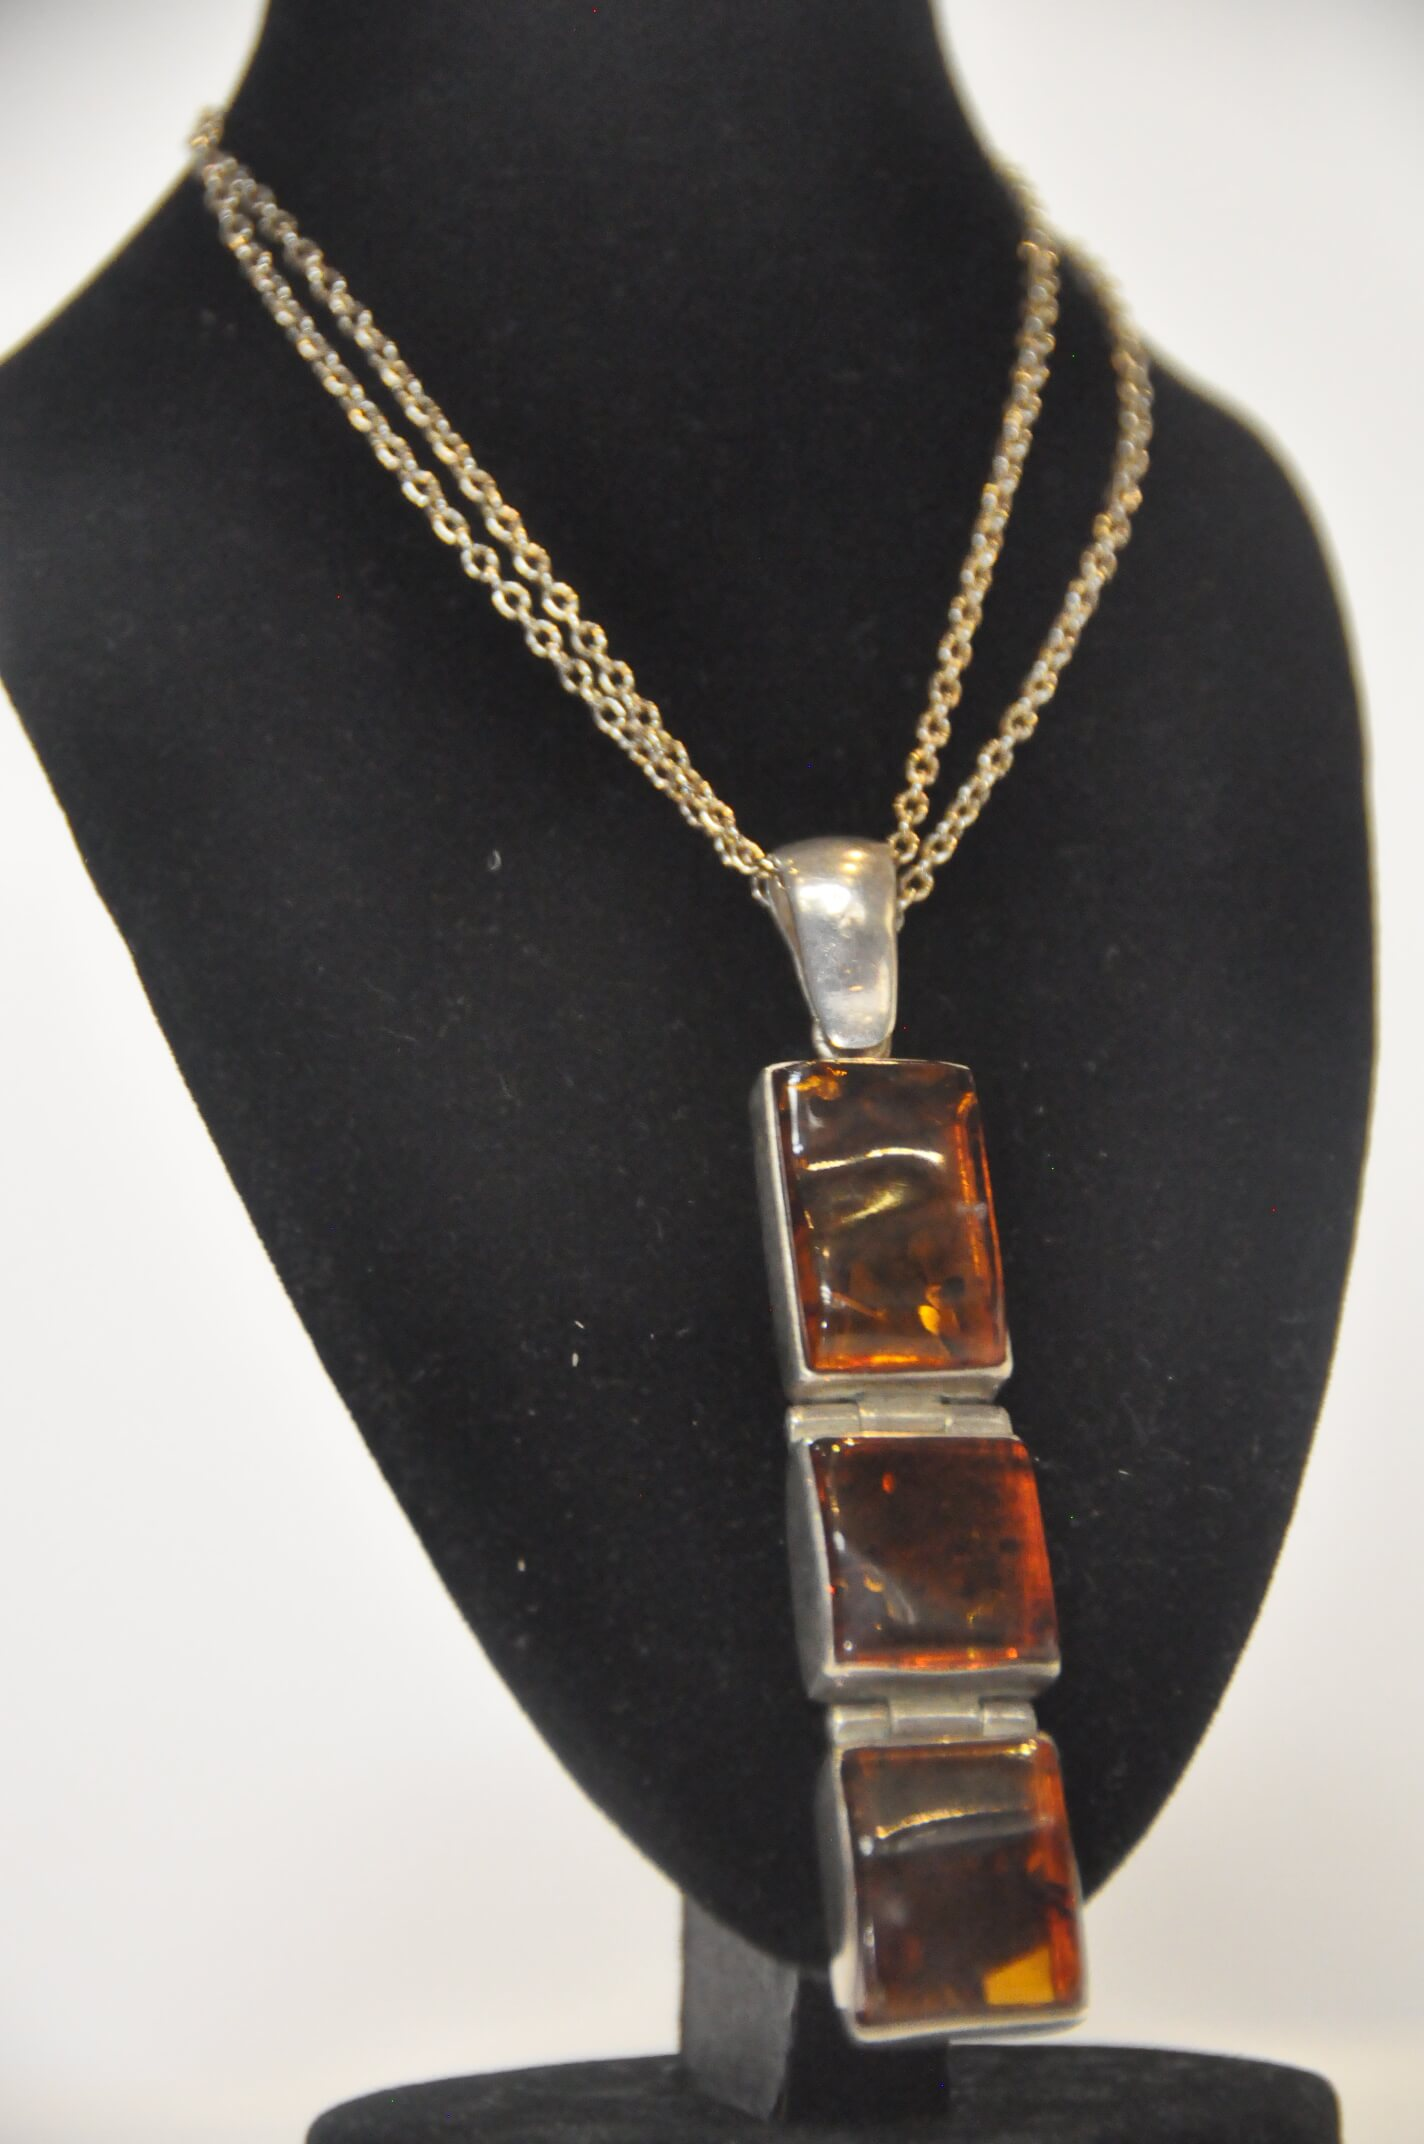 Jewelry Necklace Silver Chain w/ Amber Rec 3's 18L 11.6g